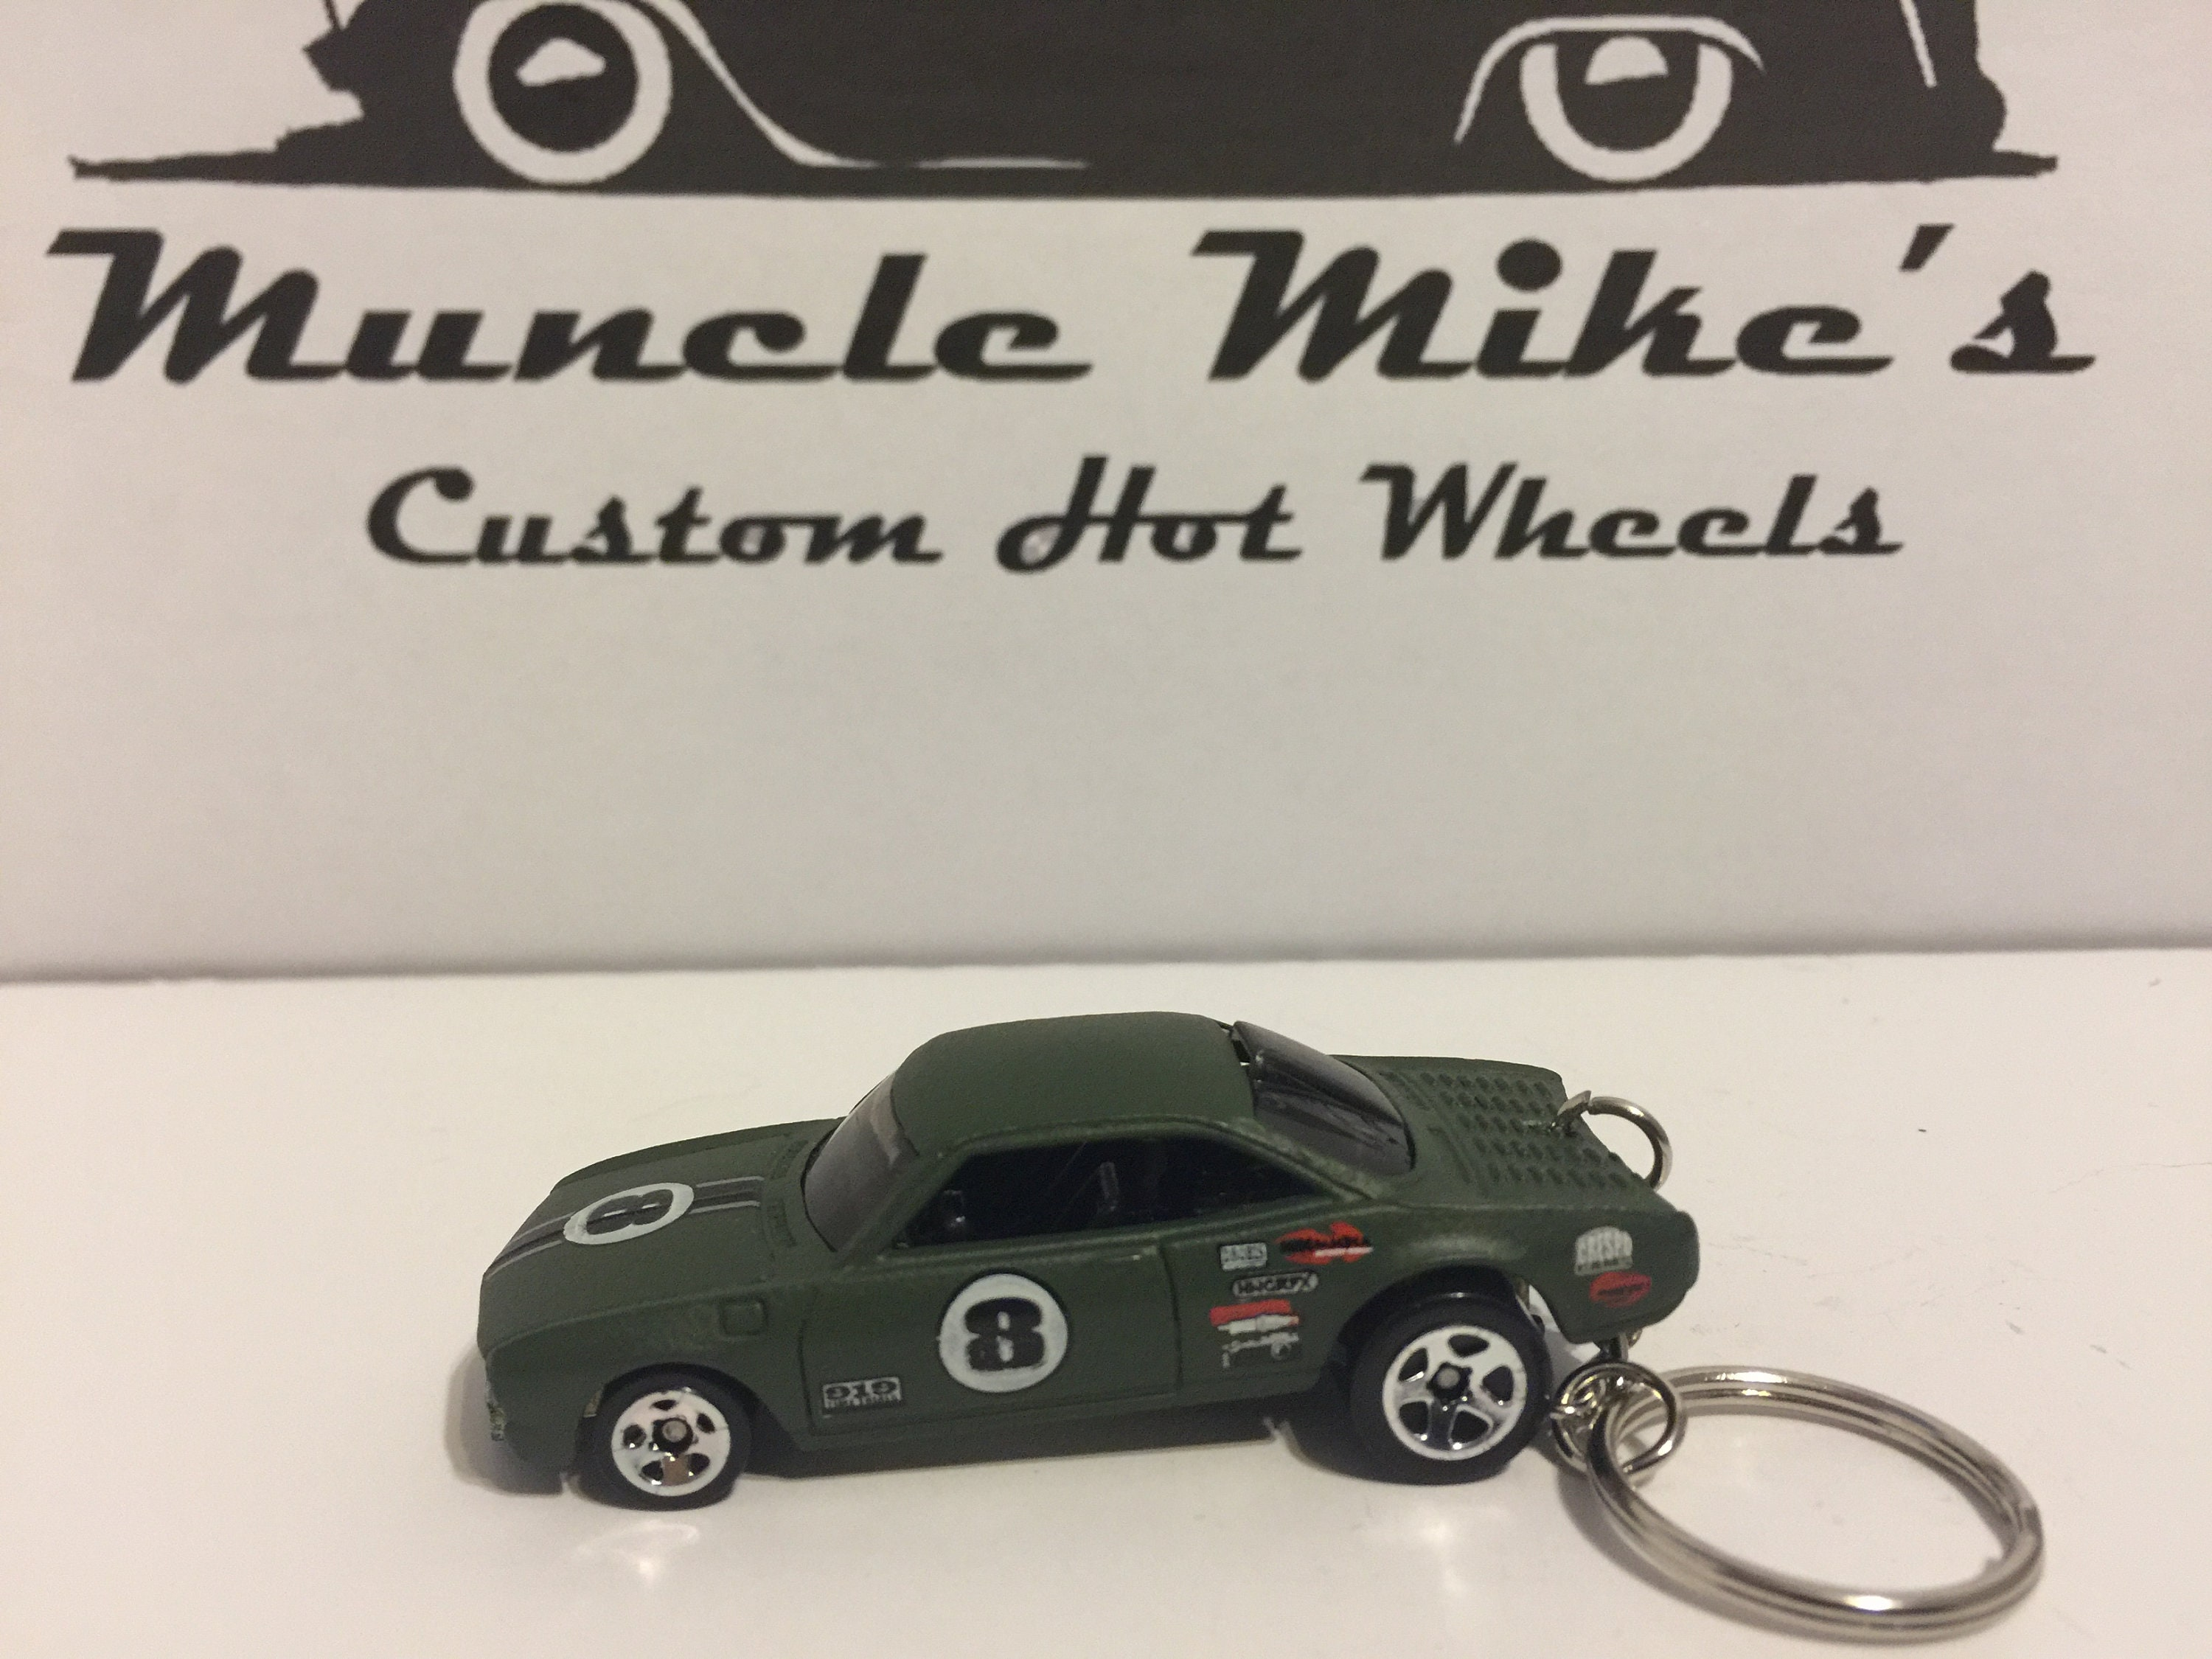 one-of-a-kind Custom Hot Wheels army green VAIRY 8 Corvair racecar key chain keychain